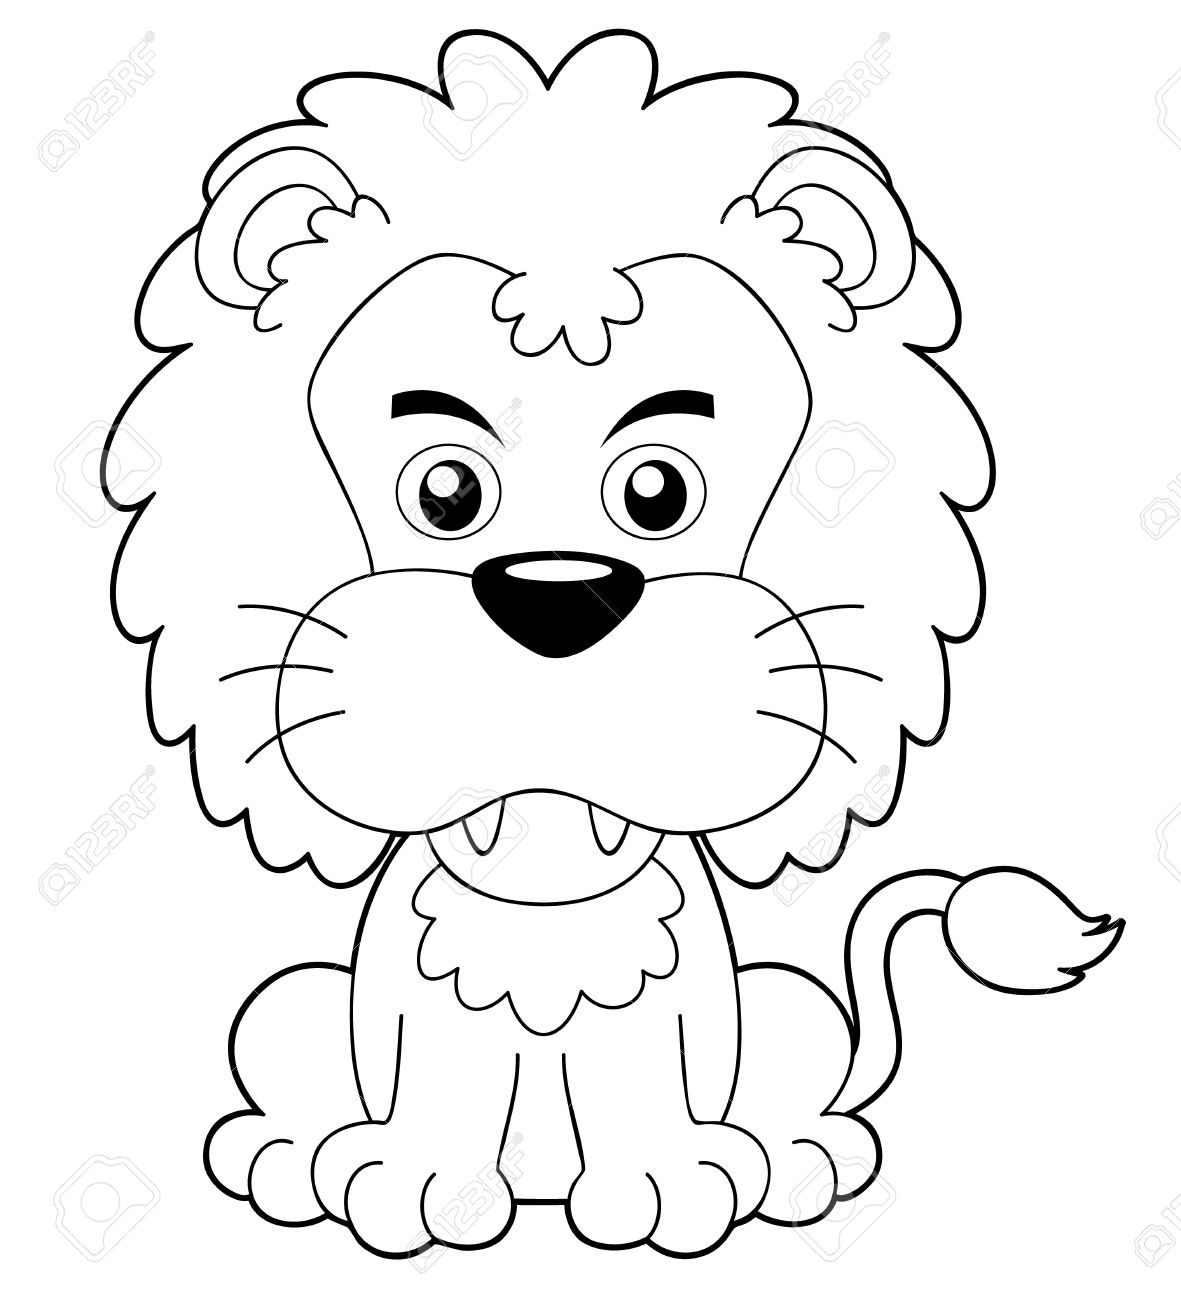 Illustration Of Cartoon Lion Outline Royalty Free Cliparts Vectors And Stock Illustration Image 16392833 Polish your personal project or design with these lion cartoon transparent png images, make it even more personalized and more attractive. illustration of cartoon lion outline